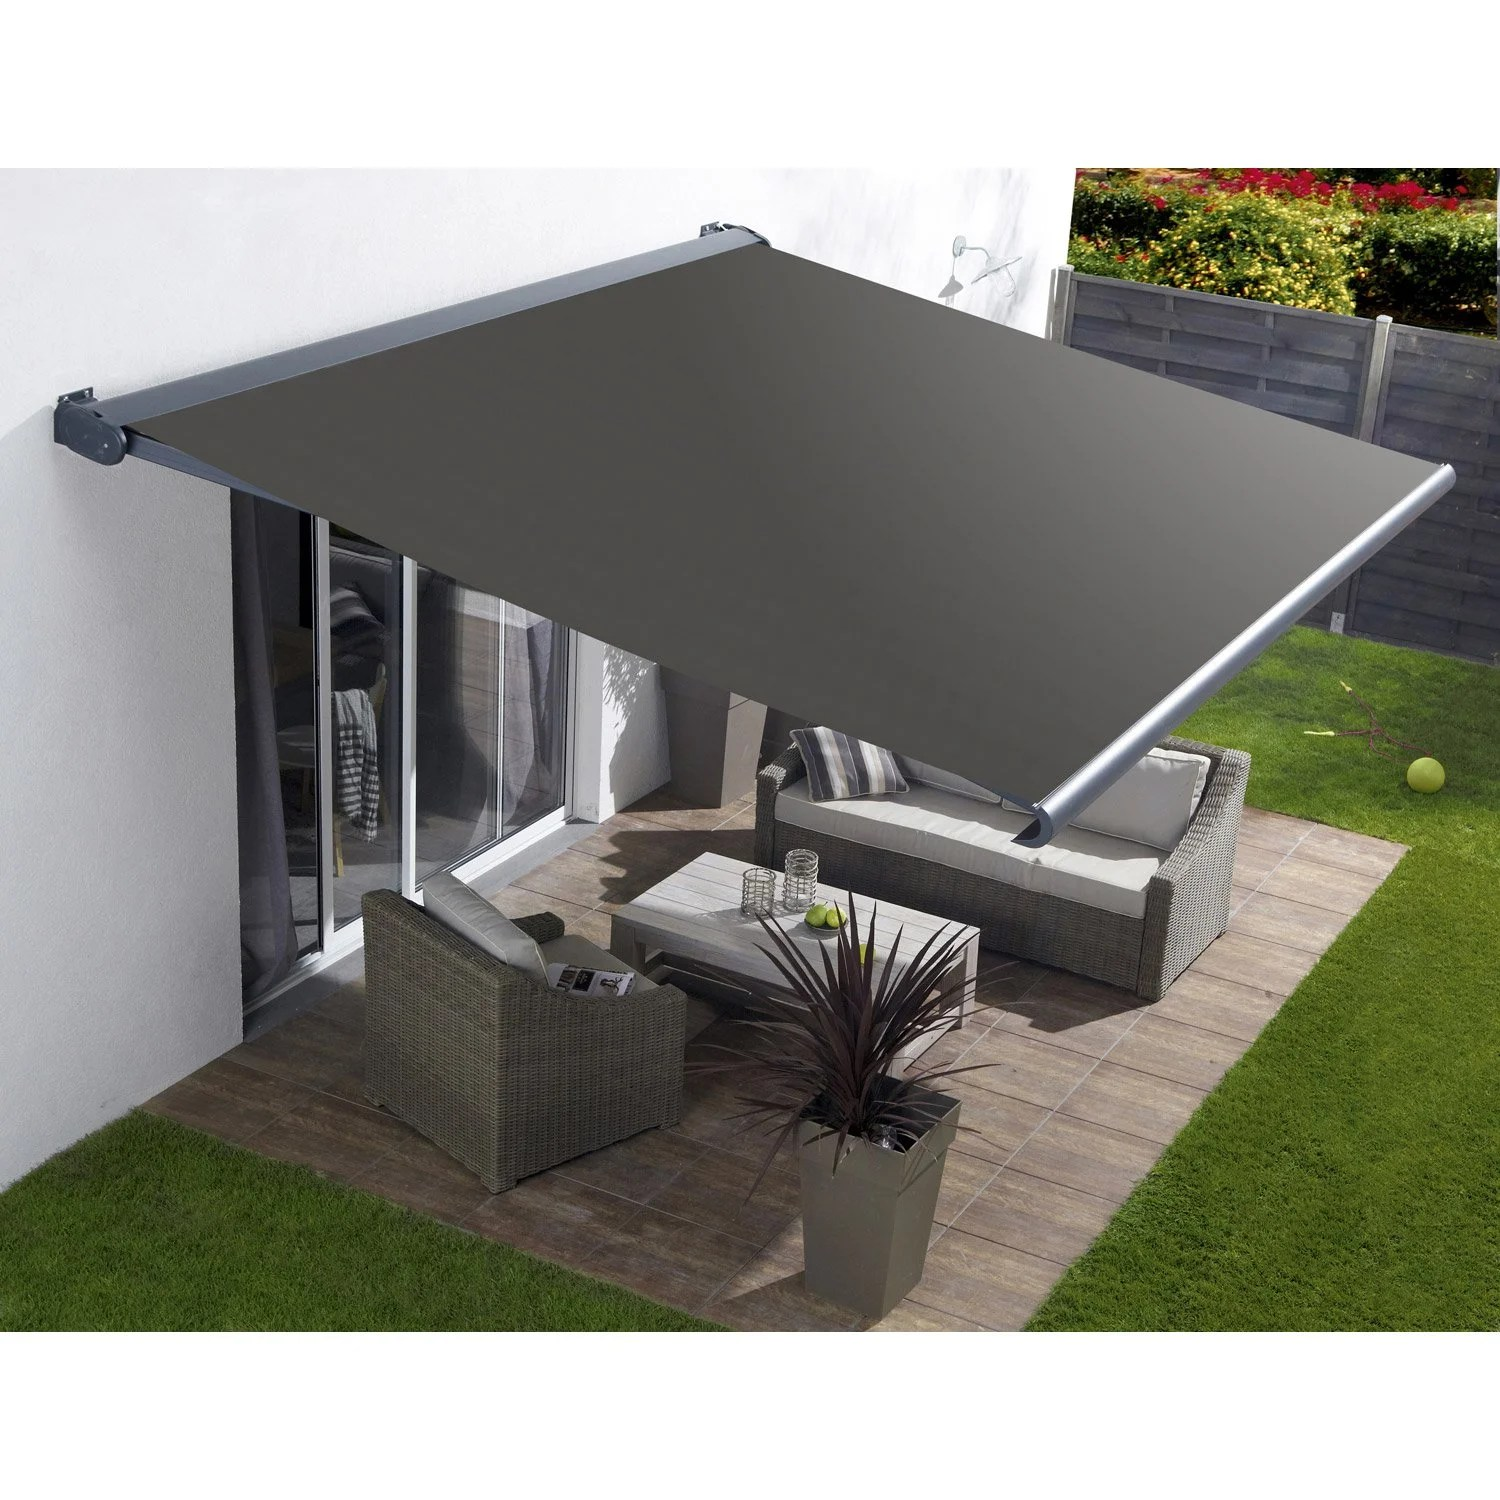 Depannage Store Banne Somfy Stores Terrasse Pas Cher